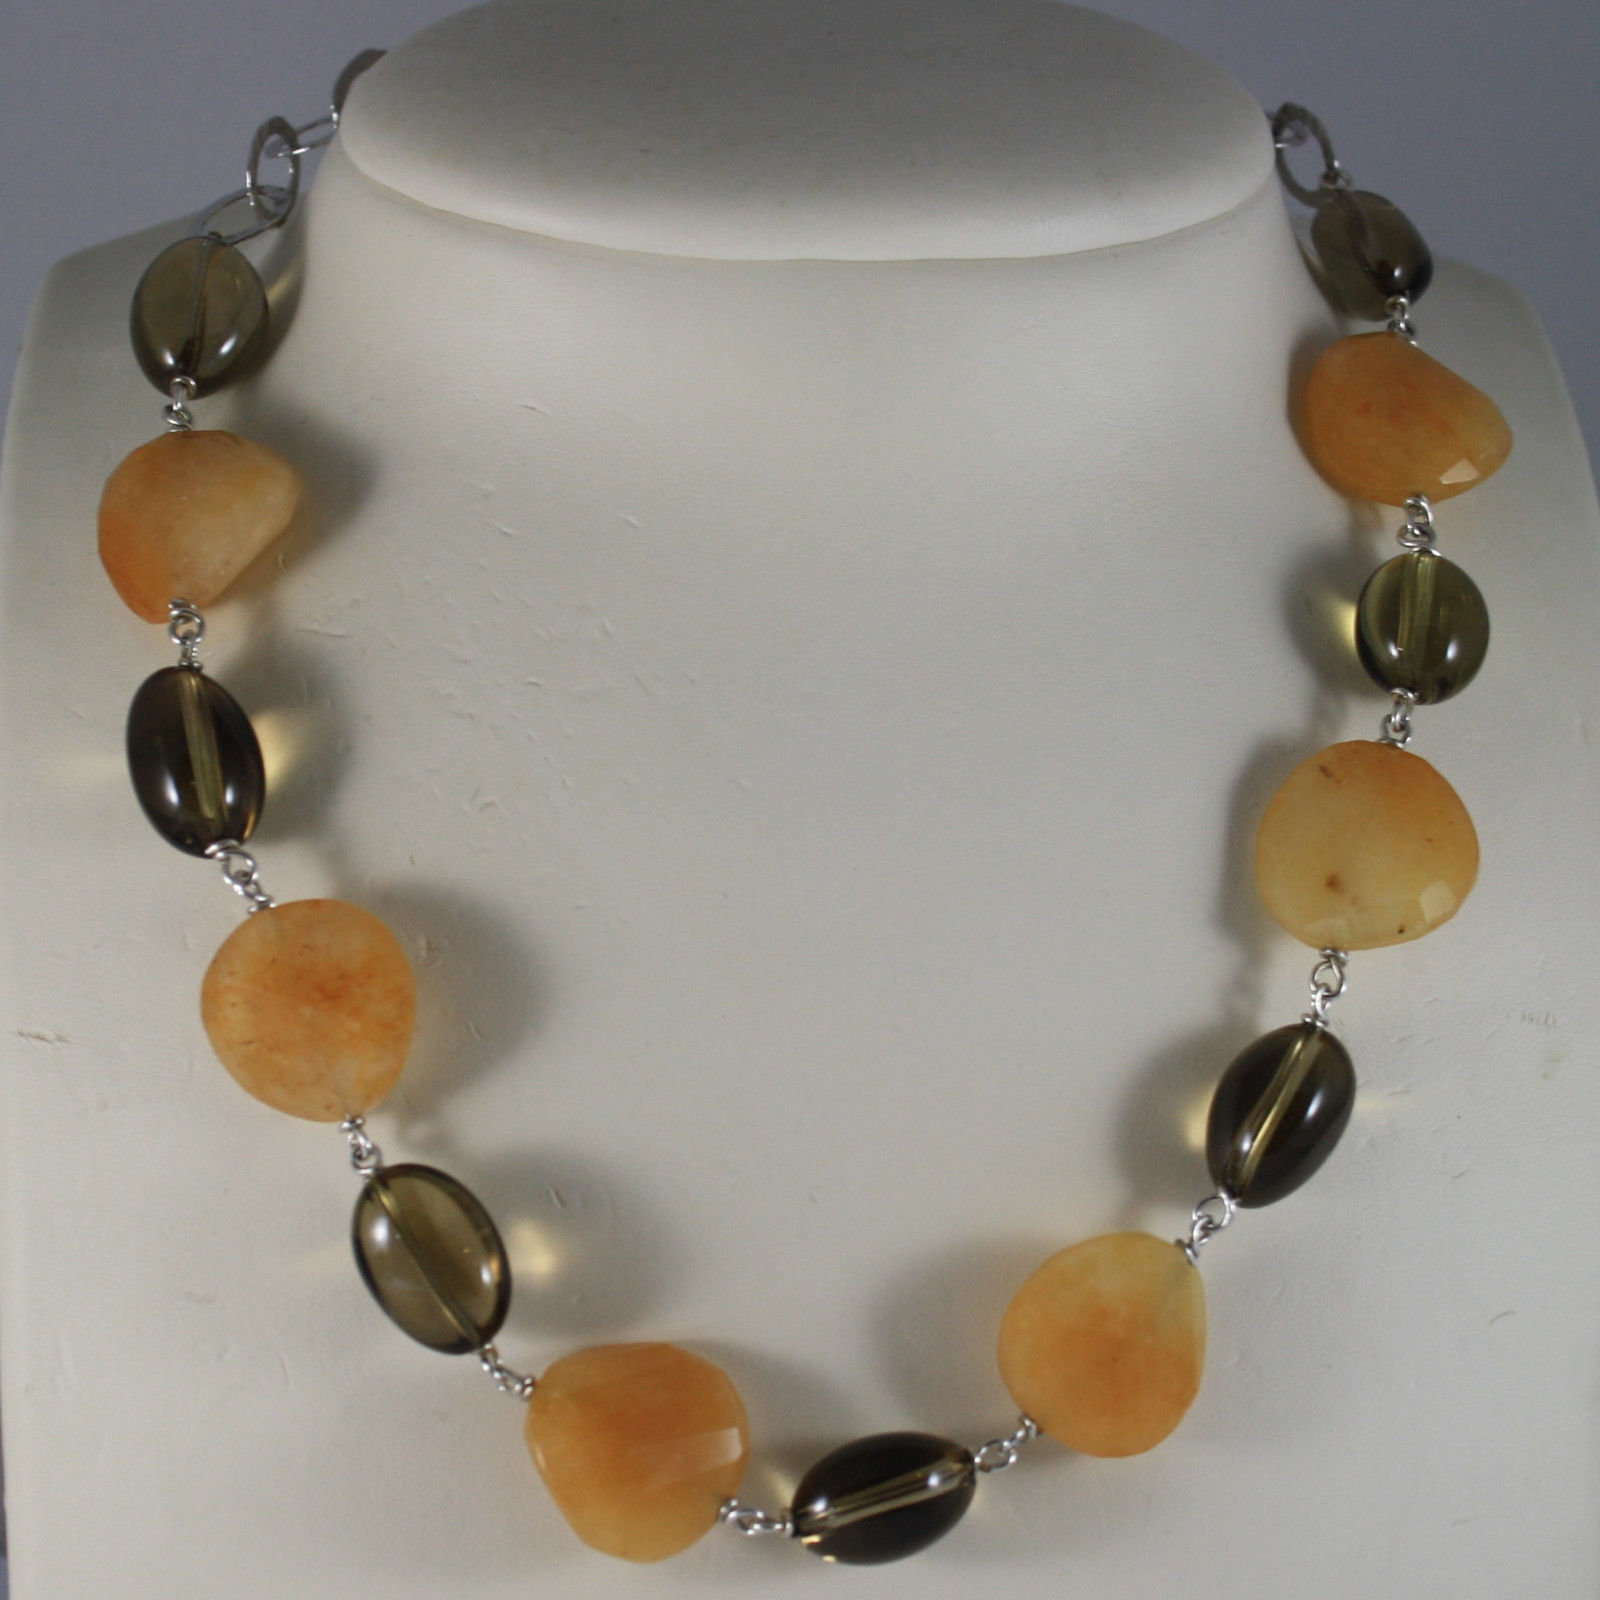 .925 RHODIUM NECKLACE WITH YELLOW JADE AND SMOKY QUARTZ